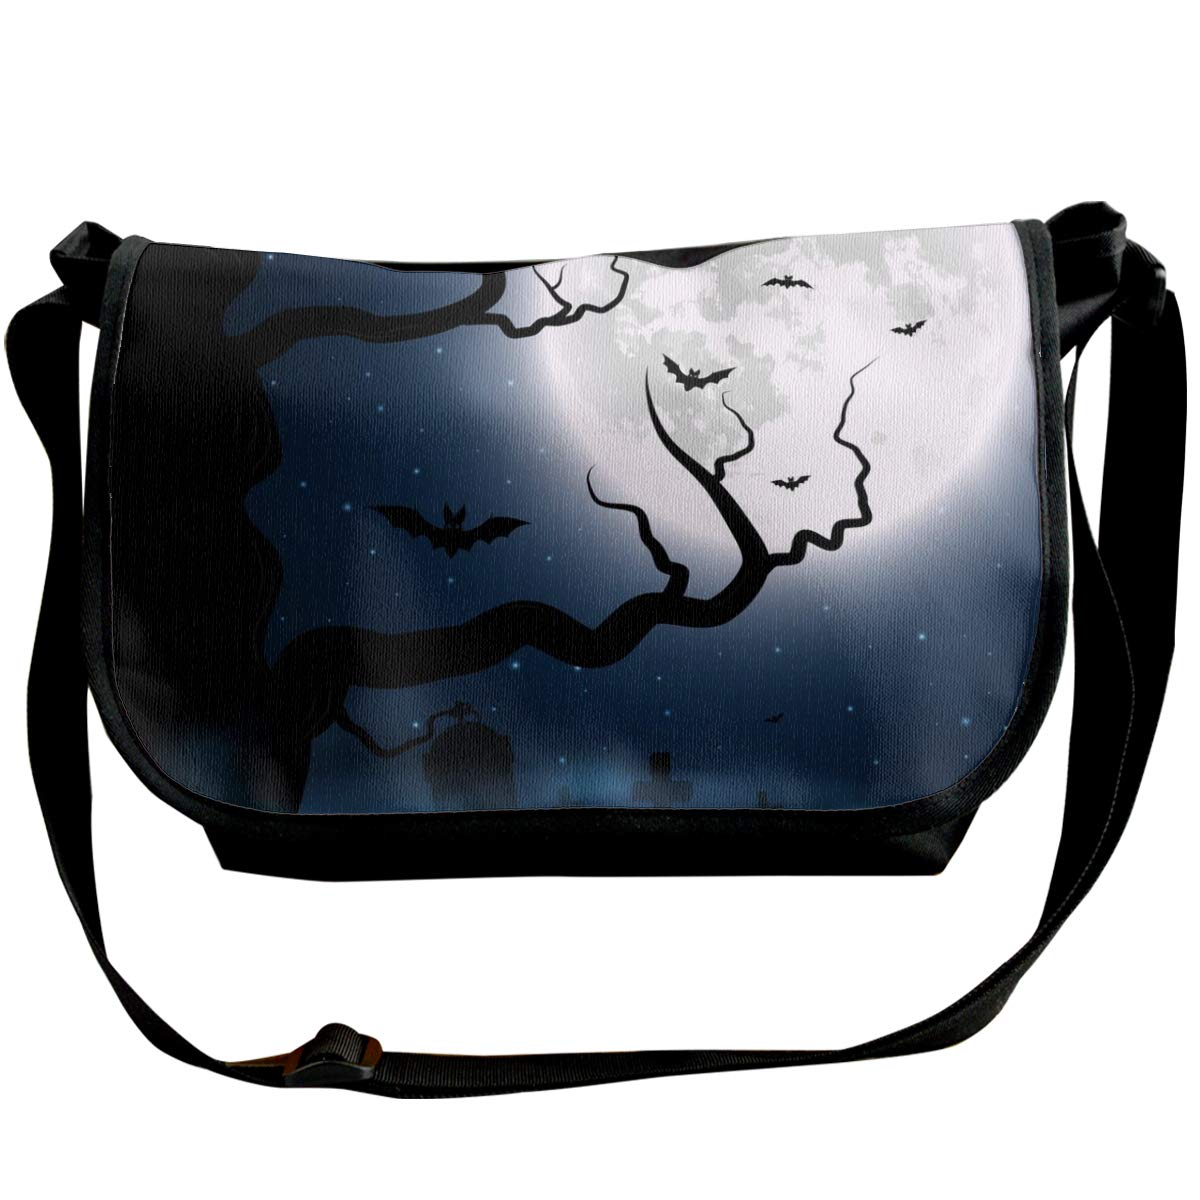 Taslilye Halloween Night Moon Bat Dead Tree Personalized Wide Crossbody Shoulder Bag For Men And Women For Daily Work Or Travel